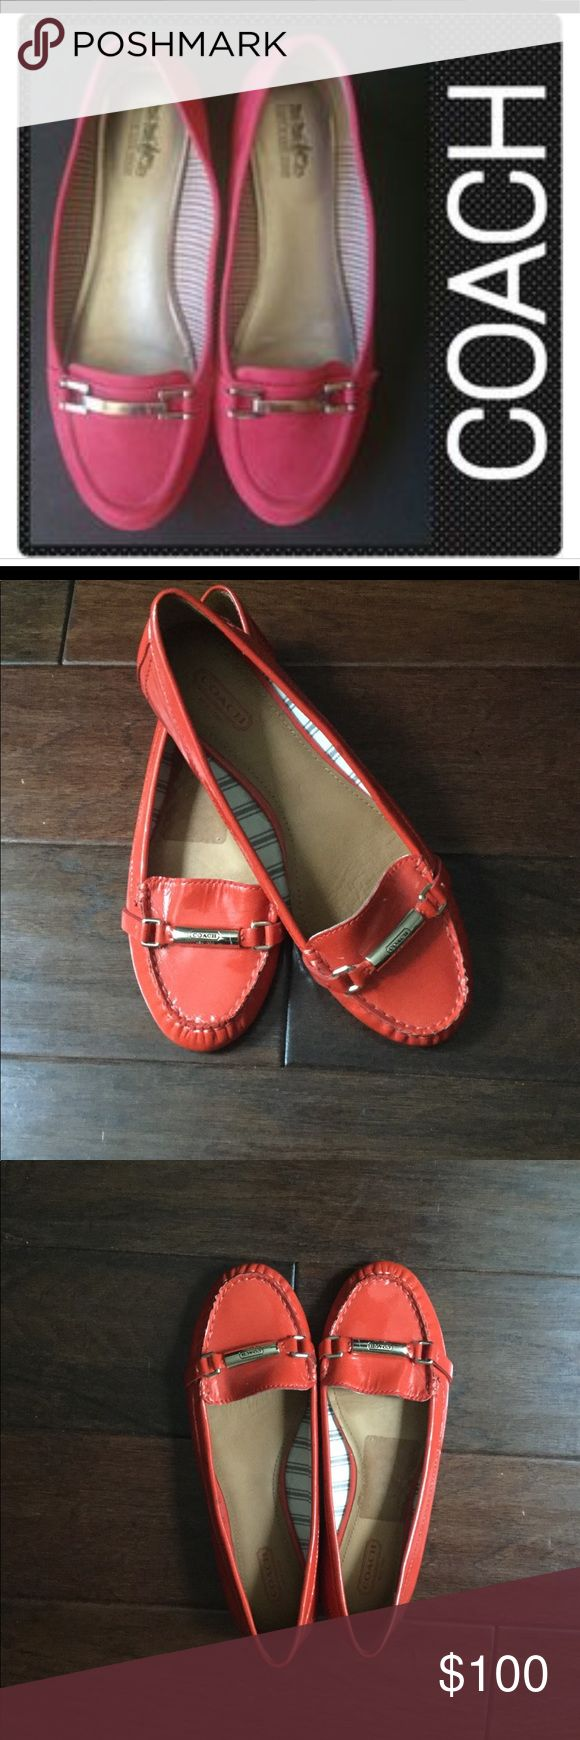 Orange Coach Flats Brand New never worn. Small ink stain see picture. One shoe is a size 8 the other is a size 8.5. Coach Shoes Flats & Loafers